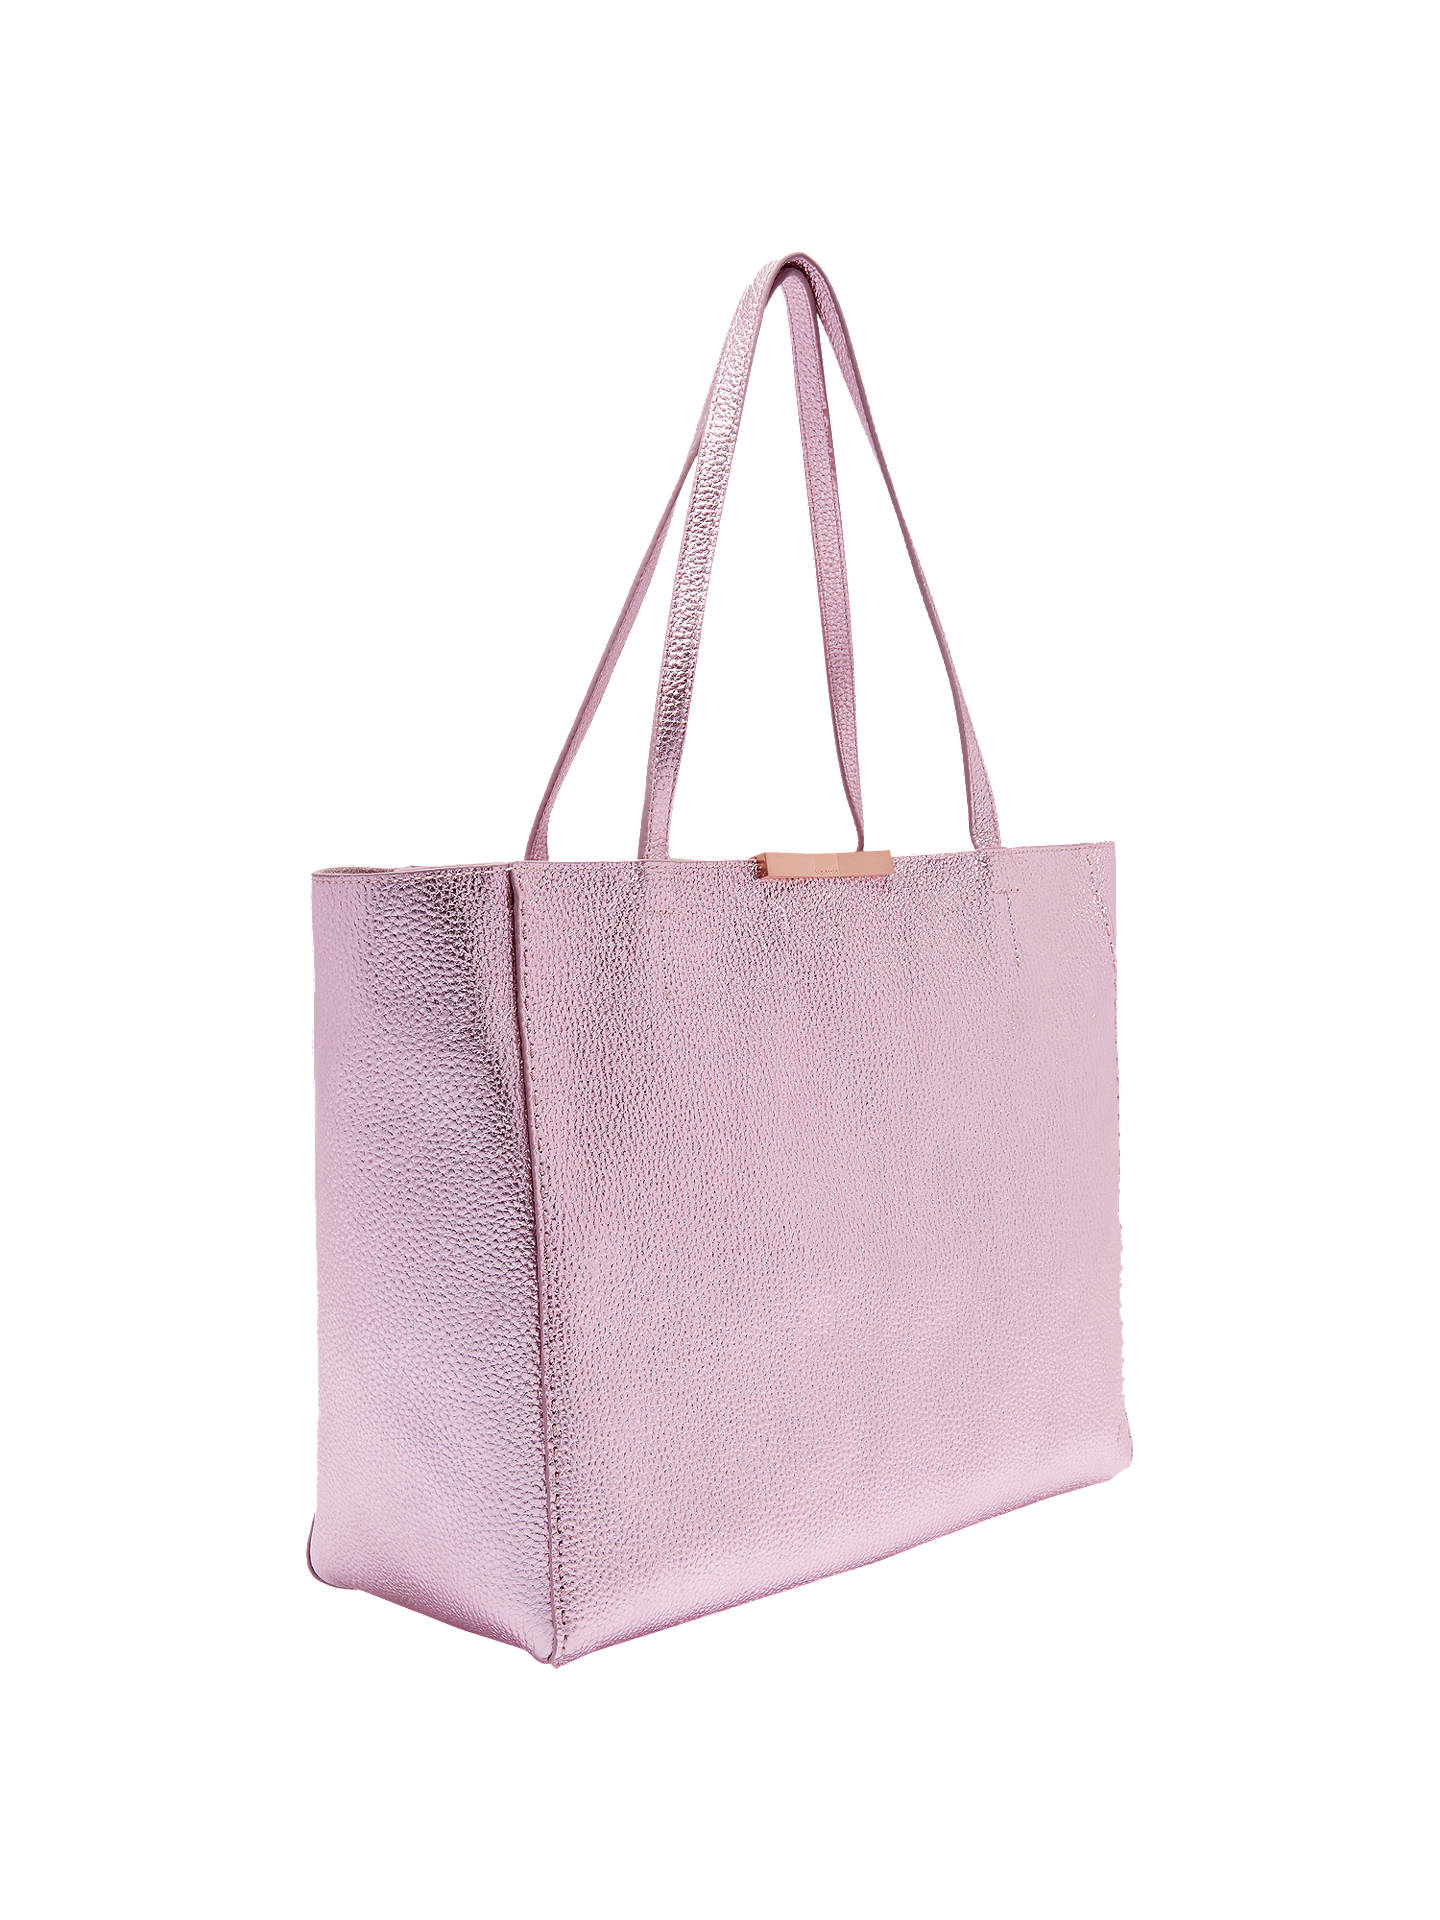 09cc05ea37 ... Buy Ted Baker Criesia Leather Metallic Tote Bag